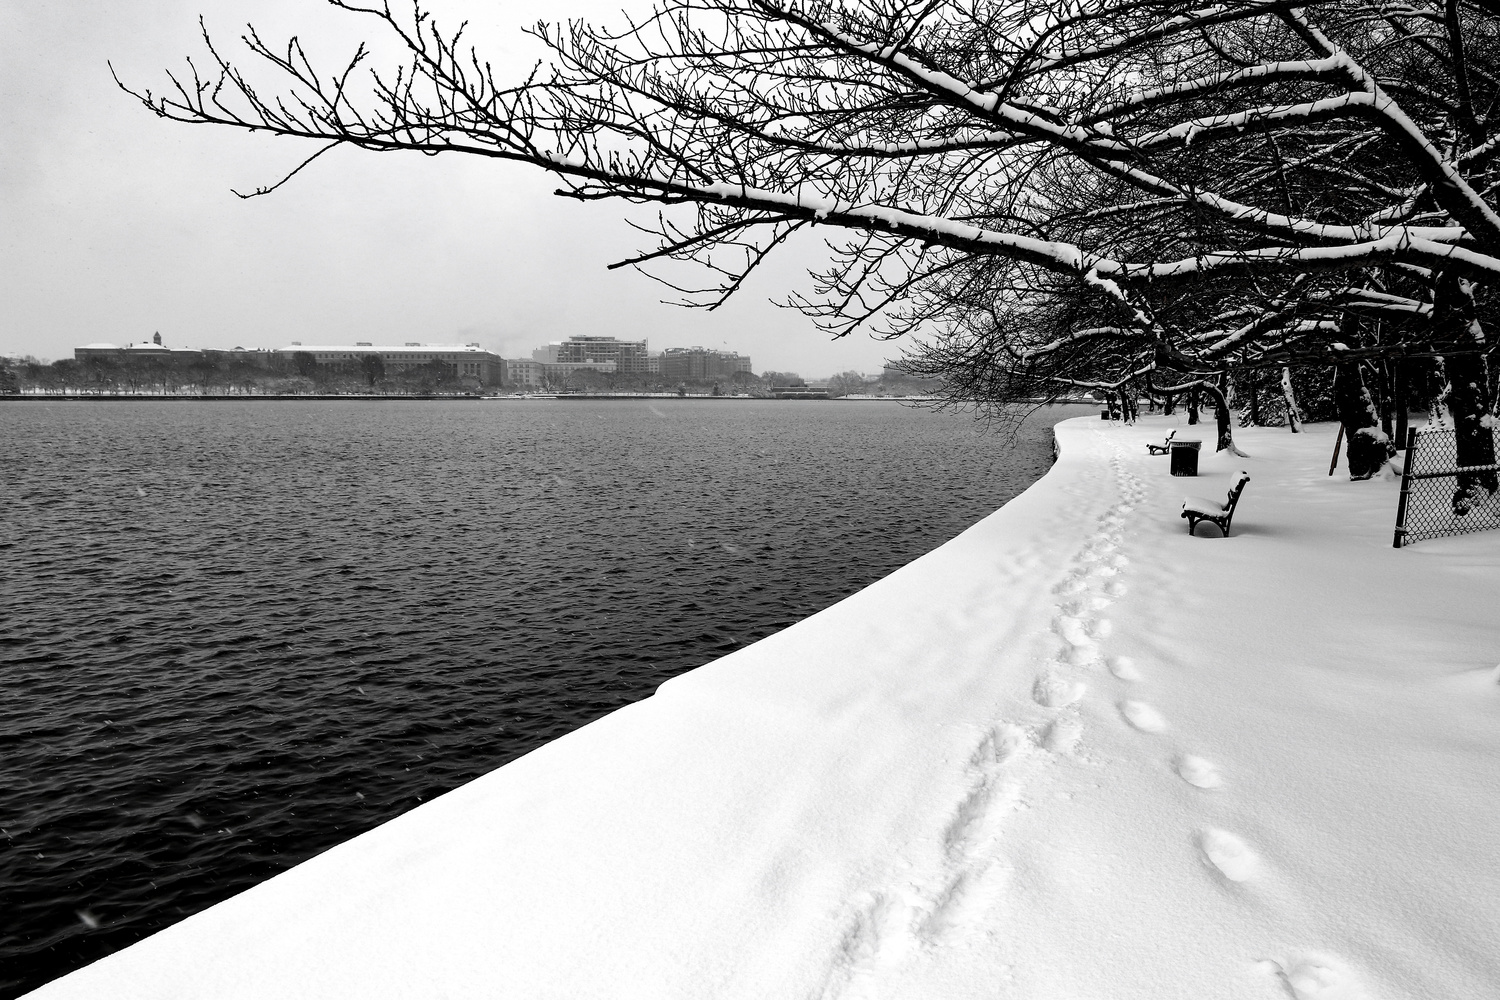 Snowy Day at the Tidal Basin by Bruce Grant